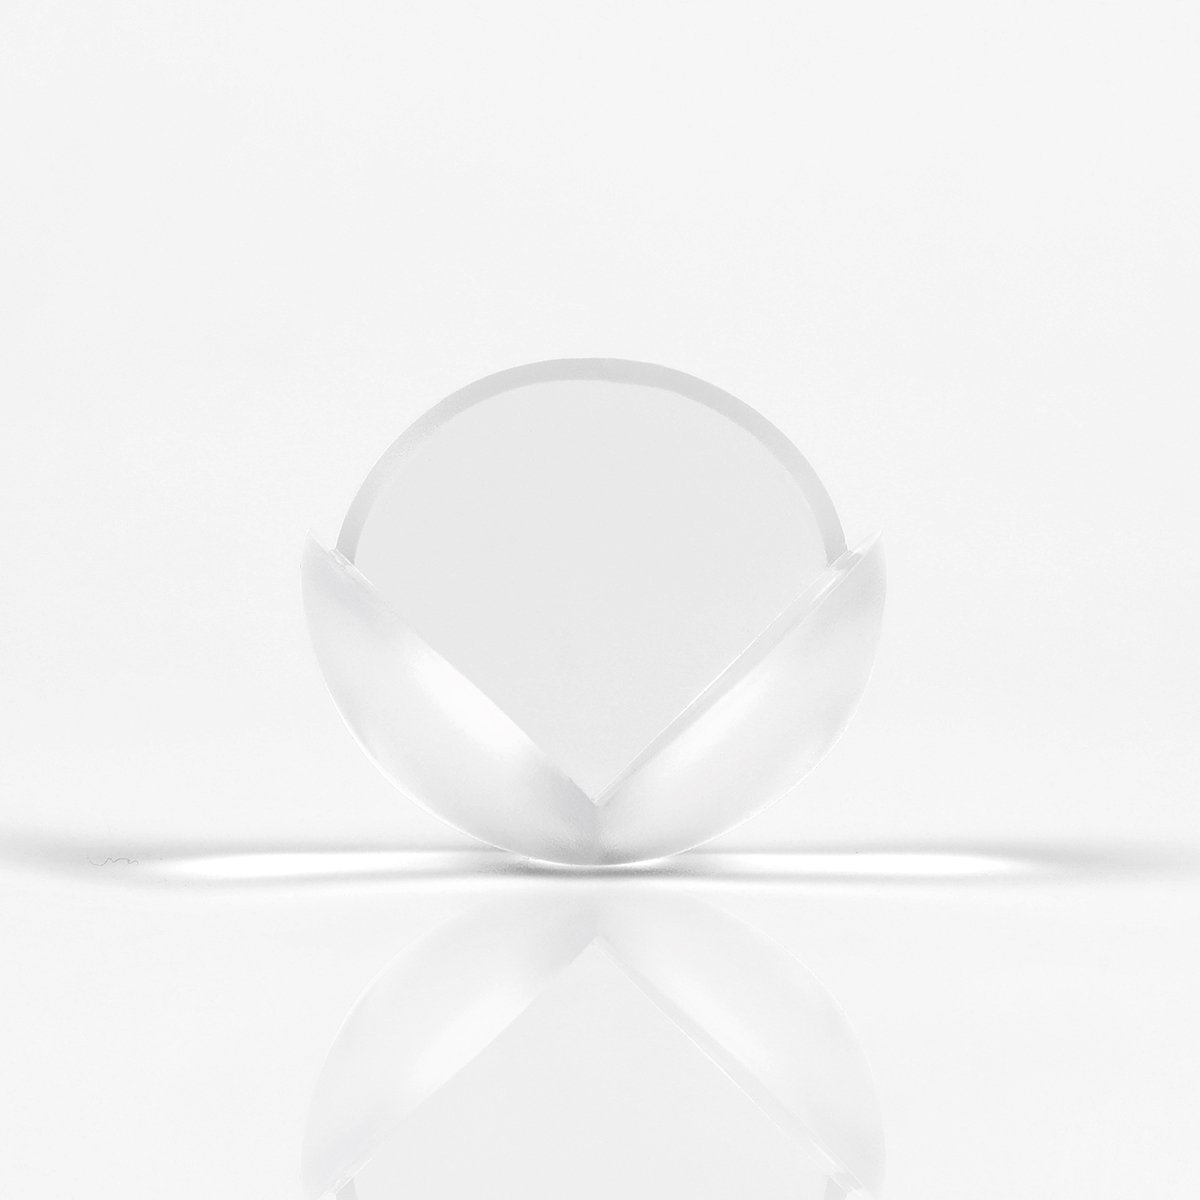 Clear Corner Protect Baby Proofing Corner Guards Protects For Furniture&Sharp Corners (Small Ball-Shaped,12Pack) LTD TMFZJ002